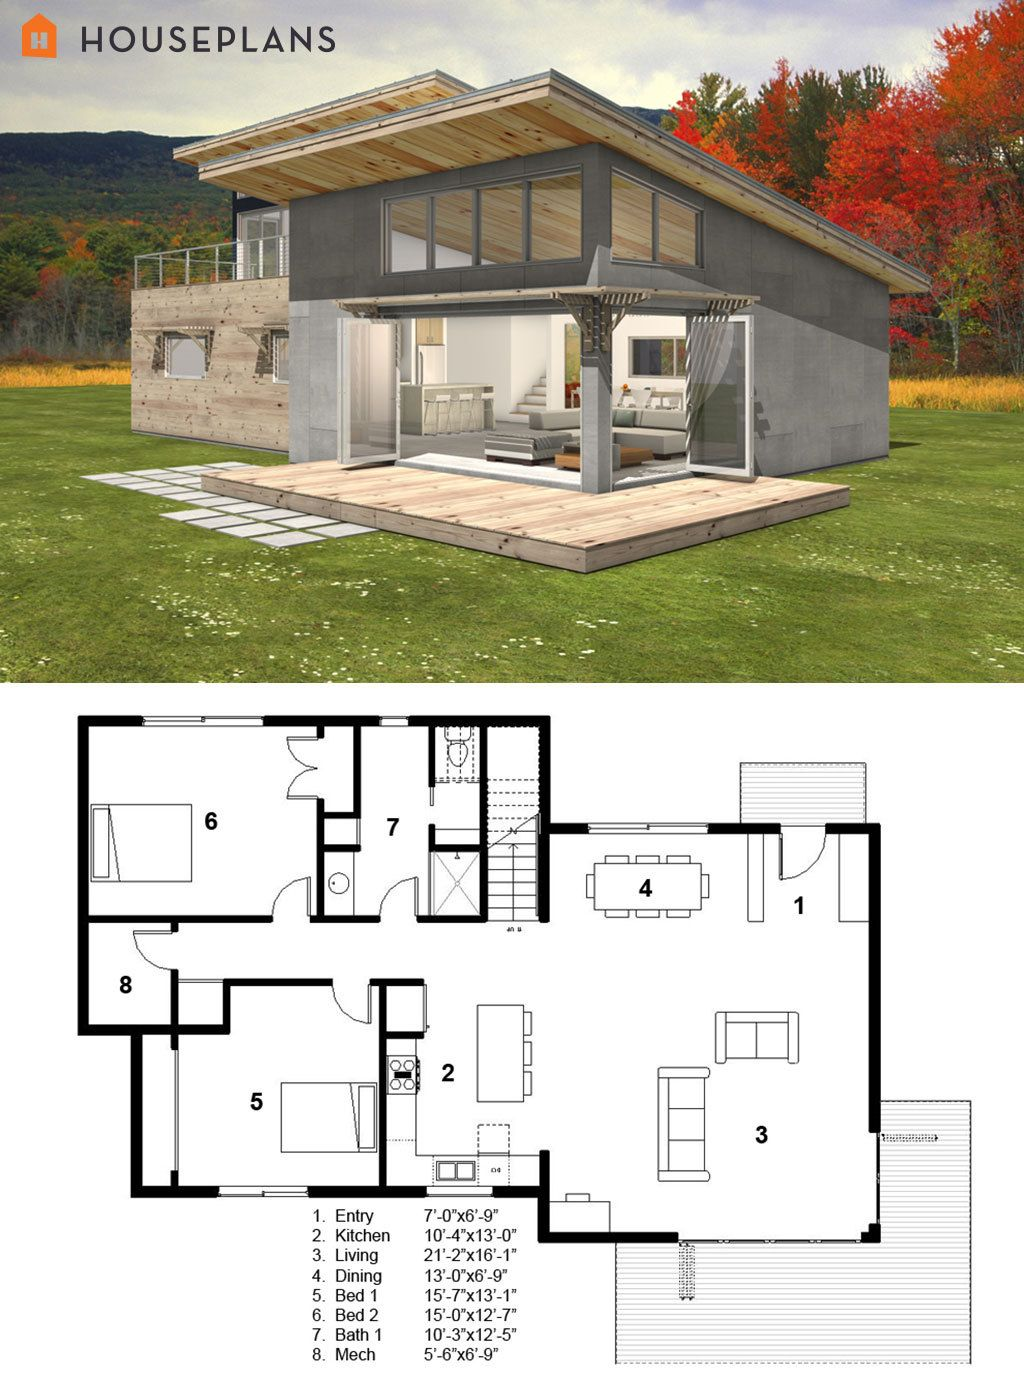 Small modern cabin house plan by freegreen energy for Best energy efficient home designs